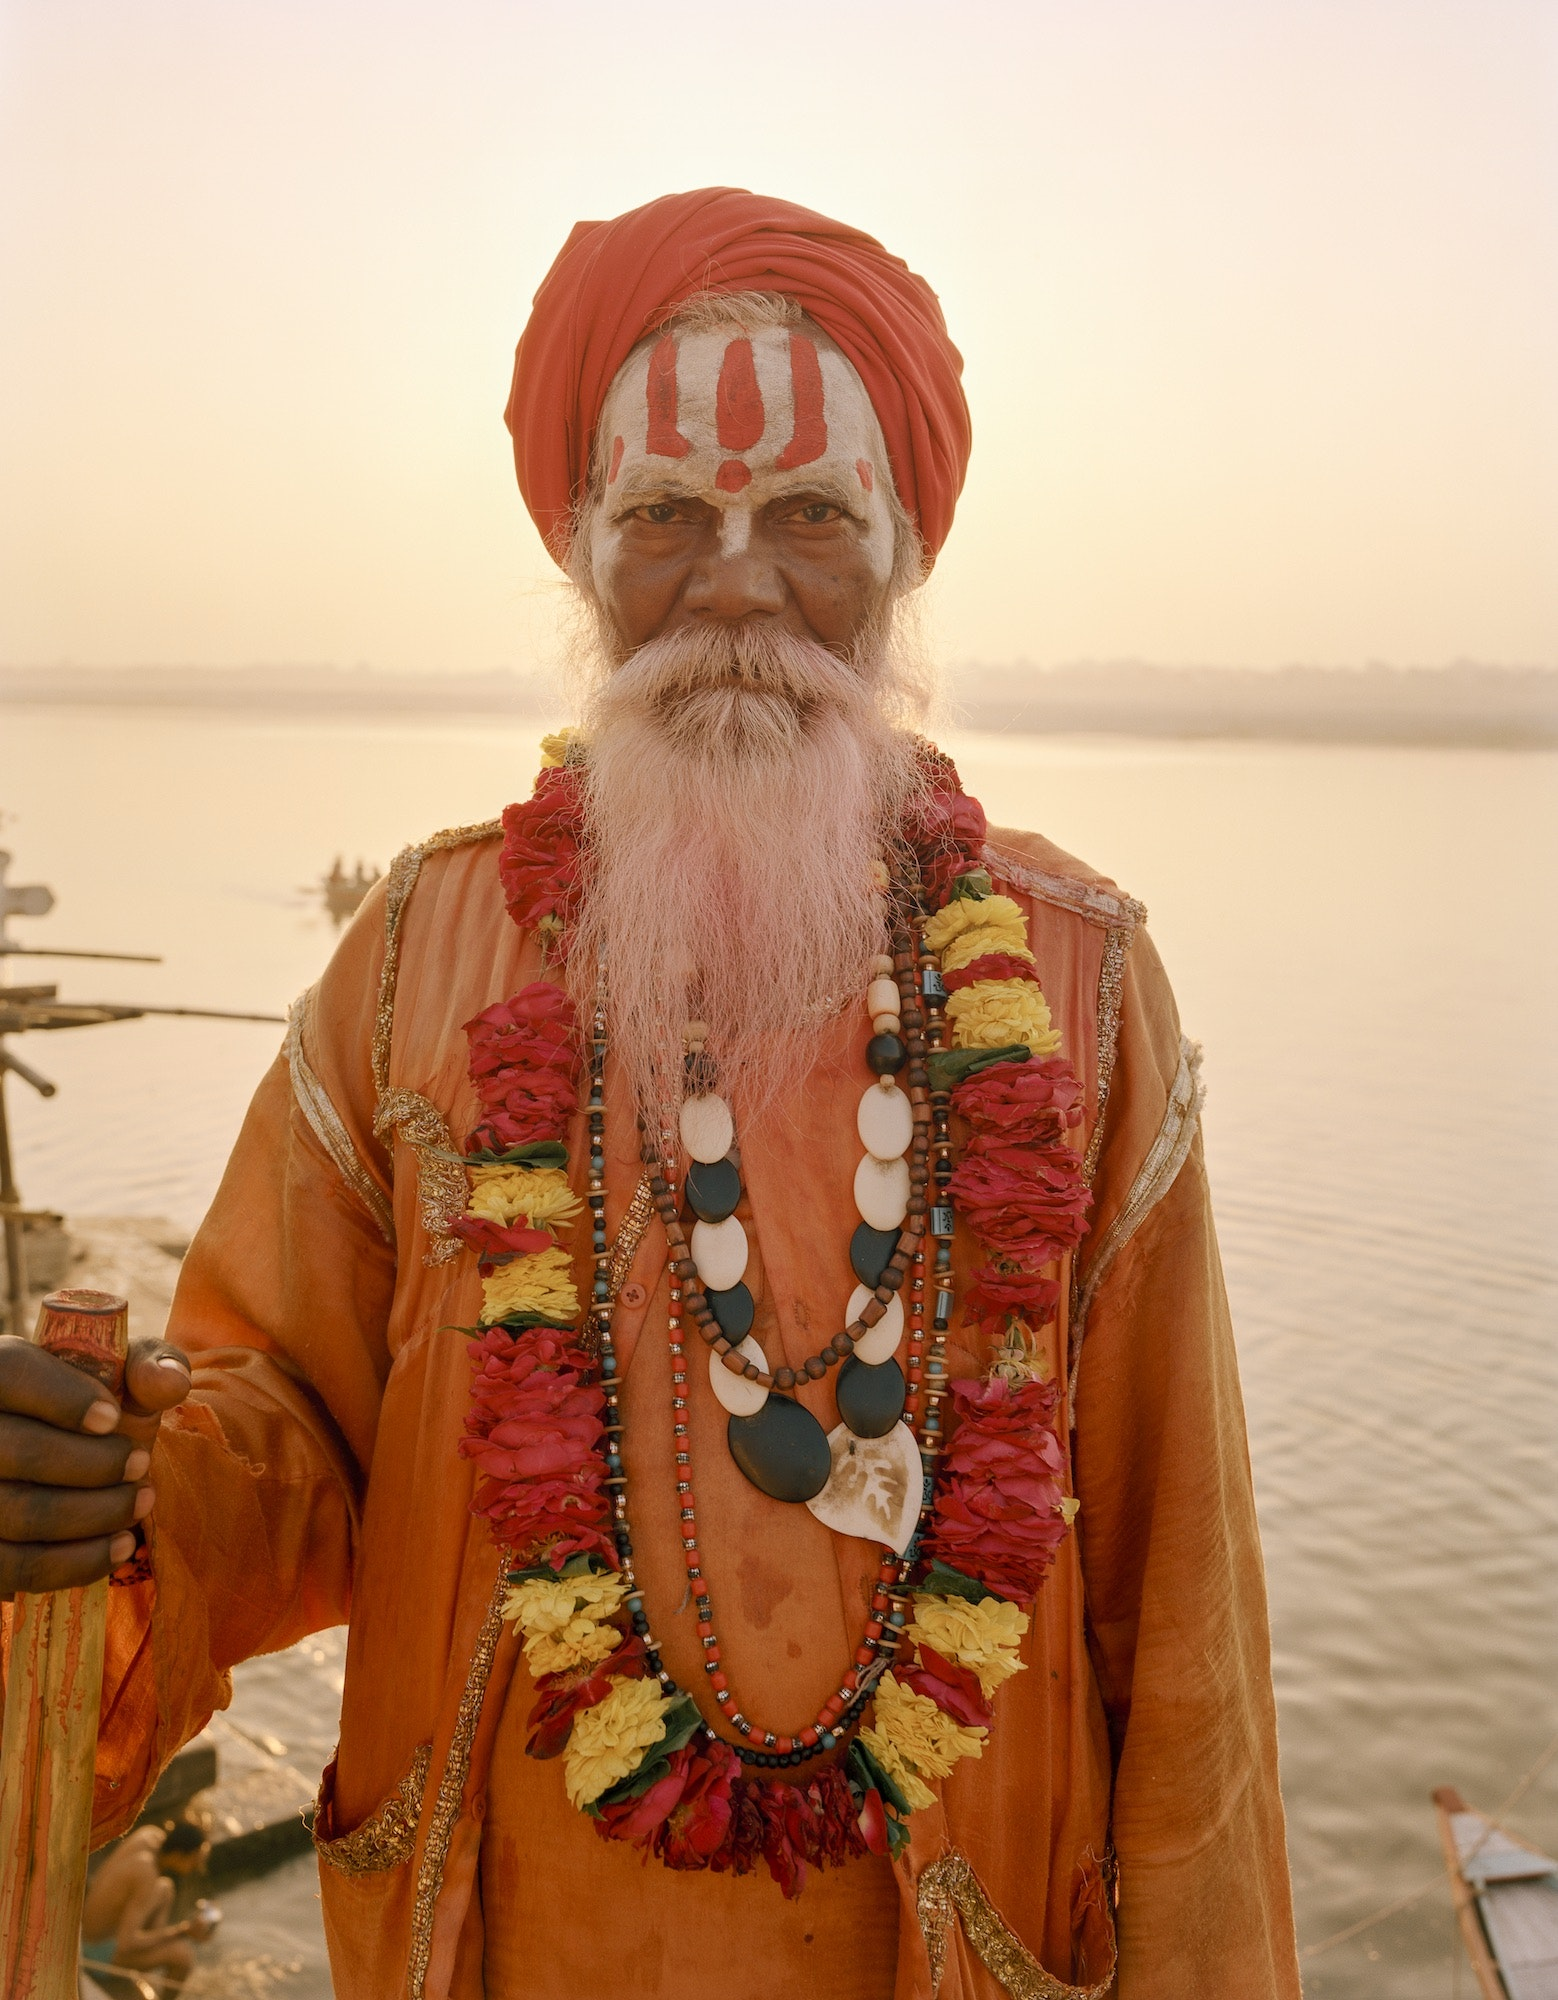 A sadhu (holy man) poses for a photo on the banks of the Ganges River.